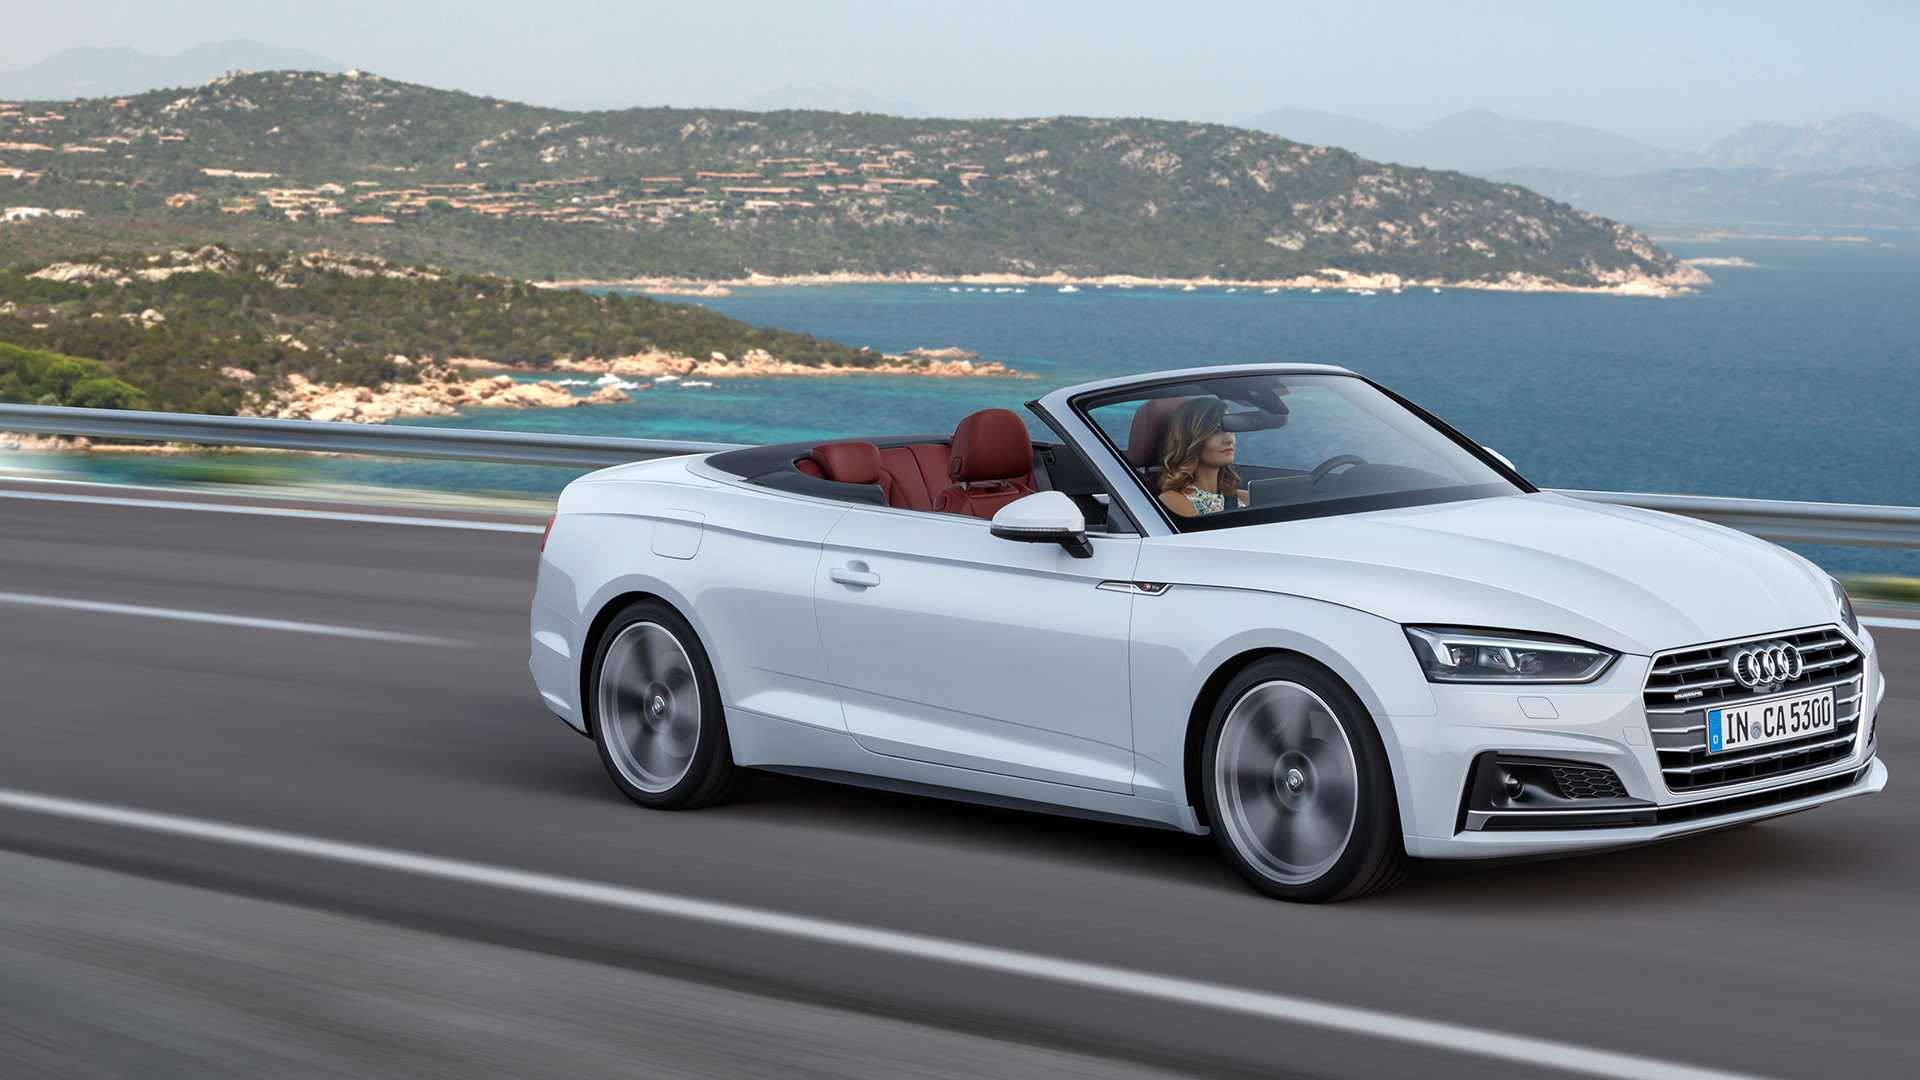 49 A 2020 Audi S5 Cabriolet Redesign And Concept